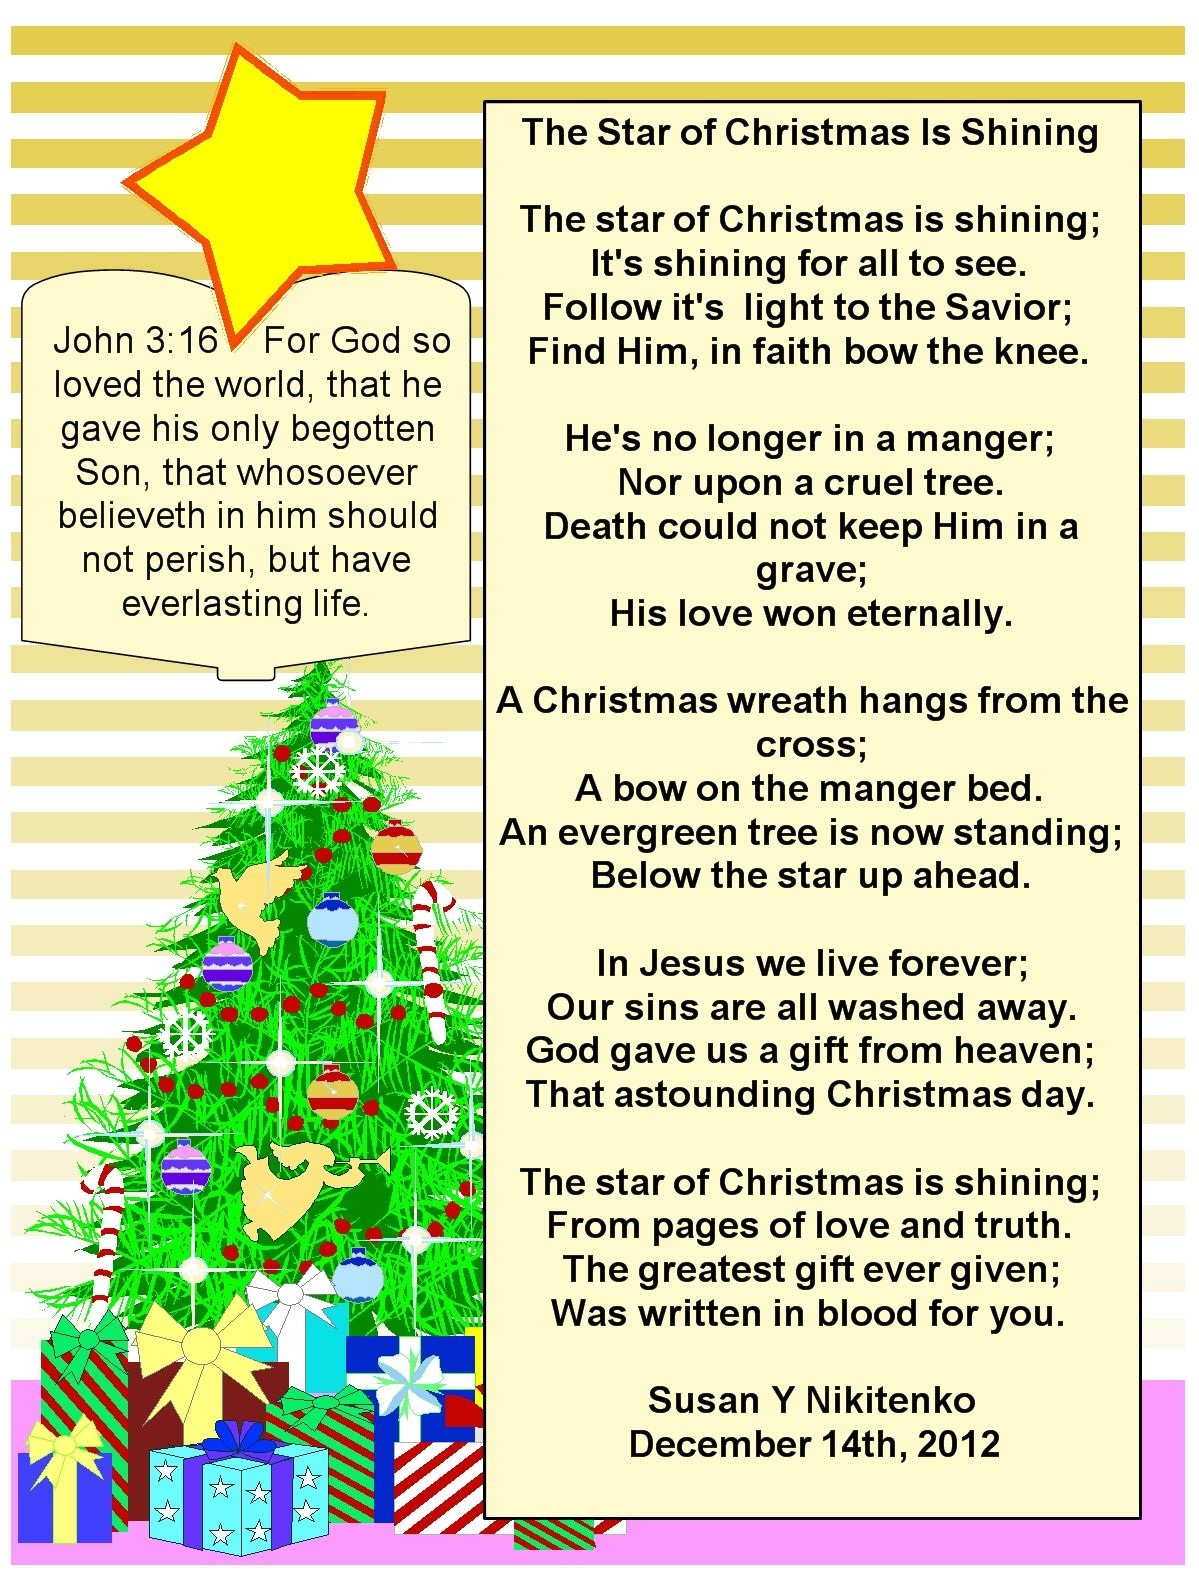 Christmas poems for church programs - Inspirational Christian Christmas Poems Christmas Poems